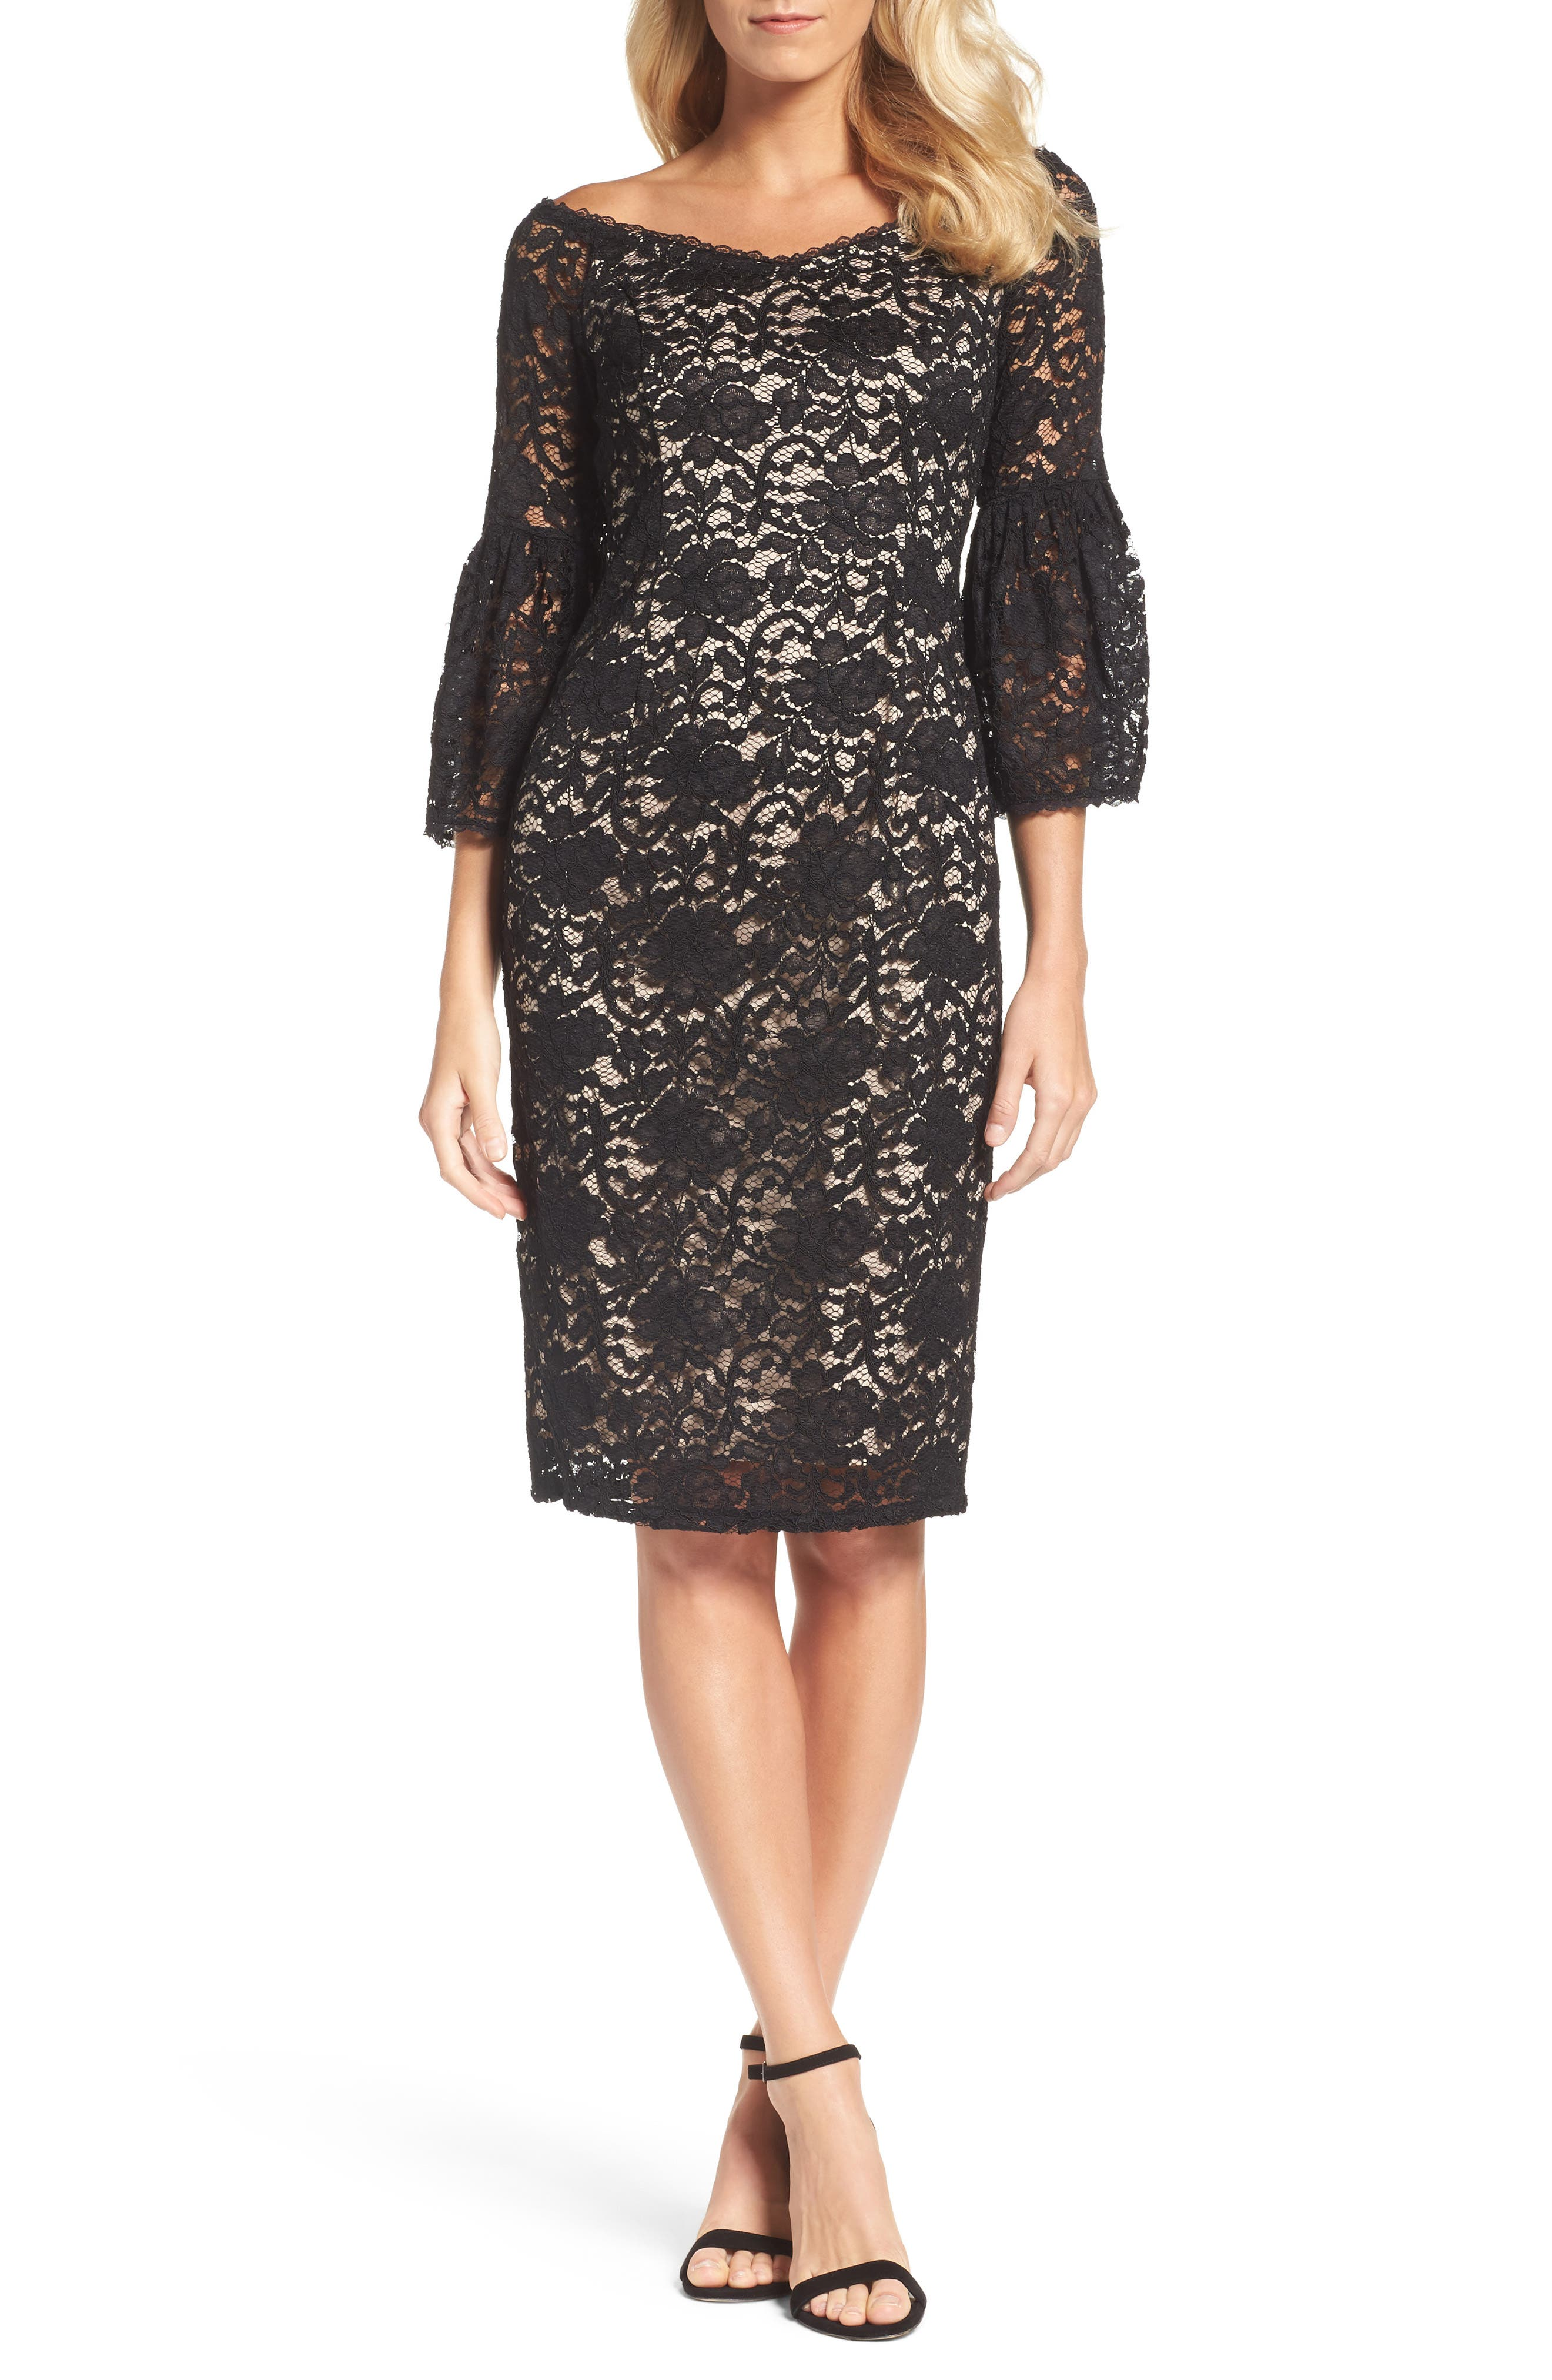 Alternate Image 1 Selected - Adrianna Papell Juliet Lace Off the Shoulder Dress